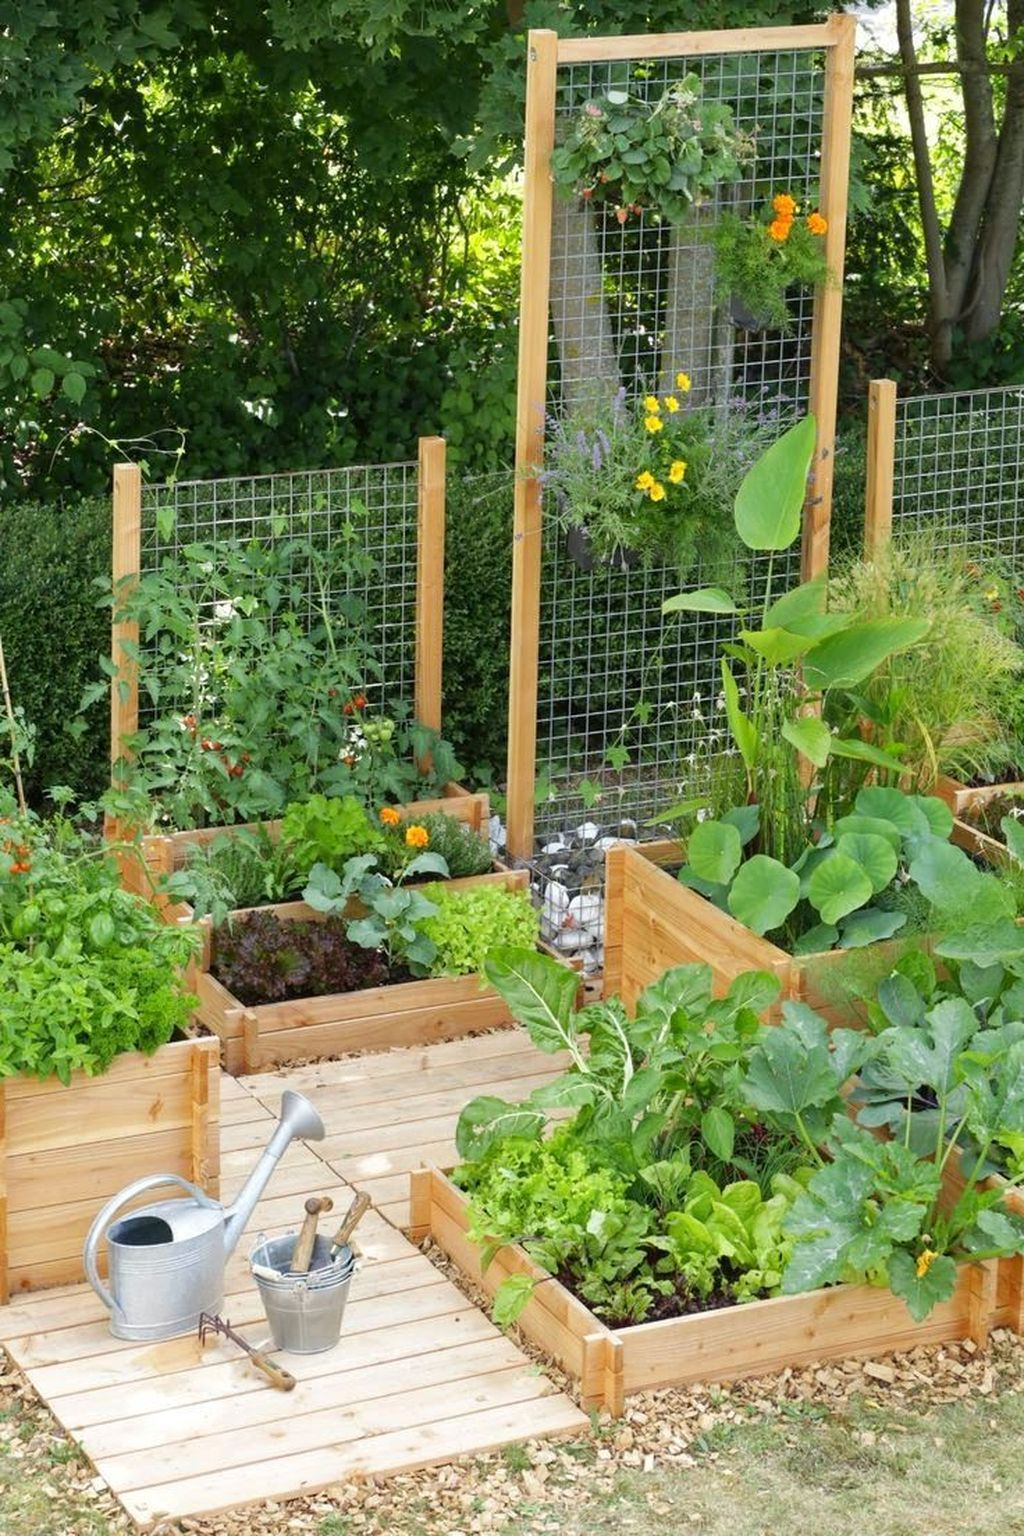 30 Cozy Small Vegetable Garden Ideas On A Budget Gardening